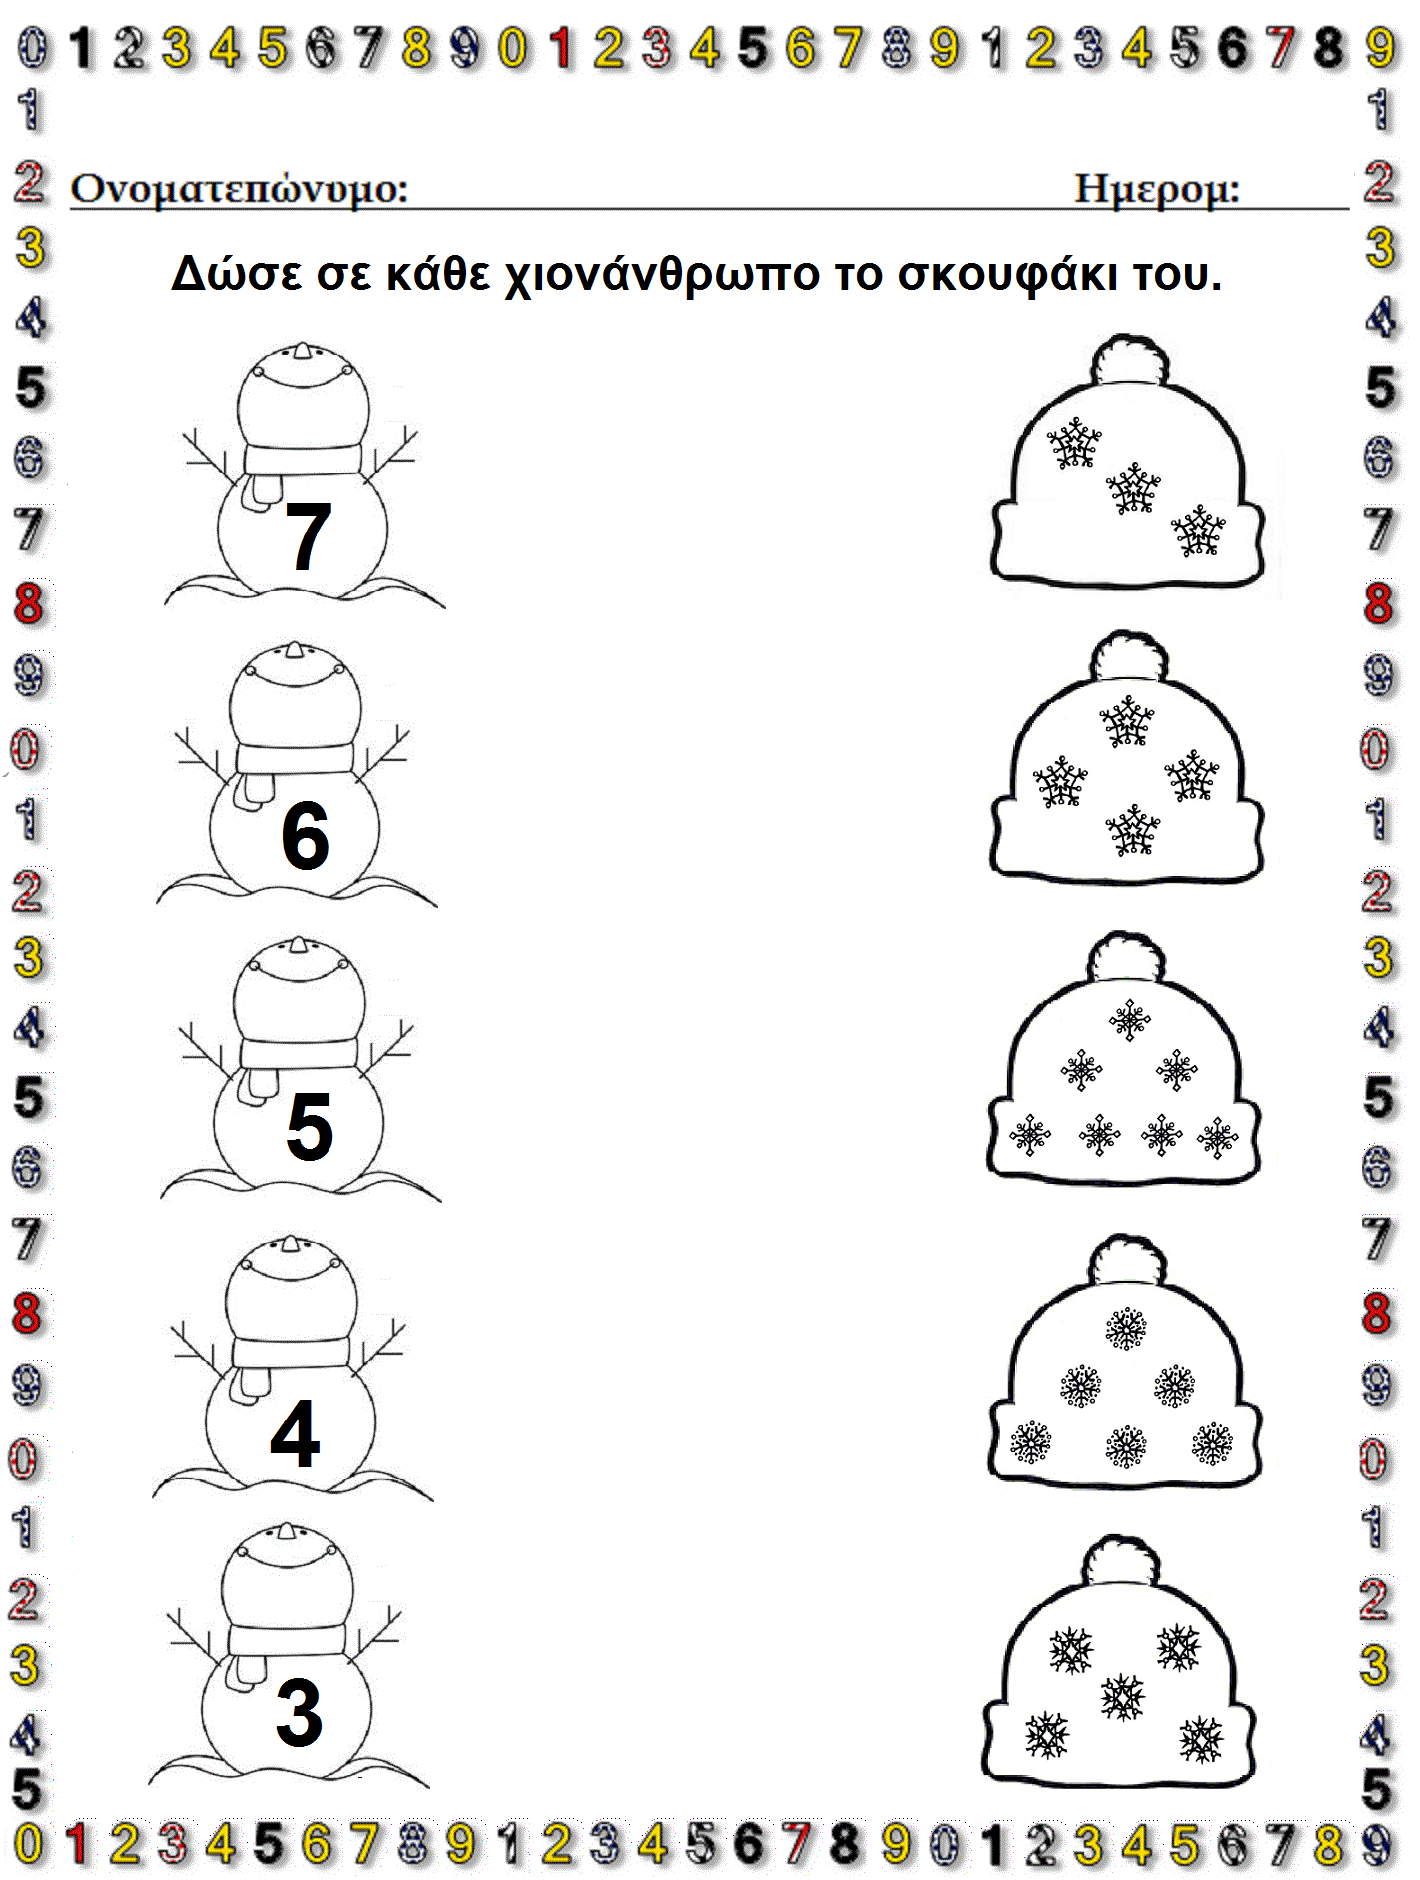 Pin by Kristina Mamic on Worksheets | Pinterest | Math, Winter and ...